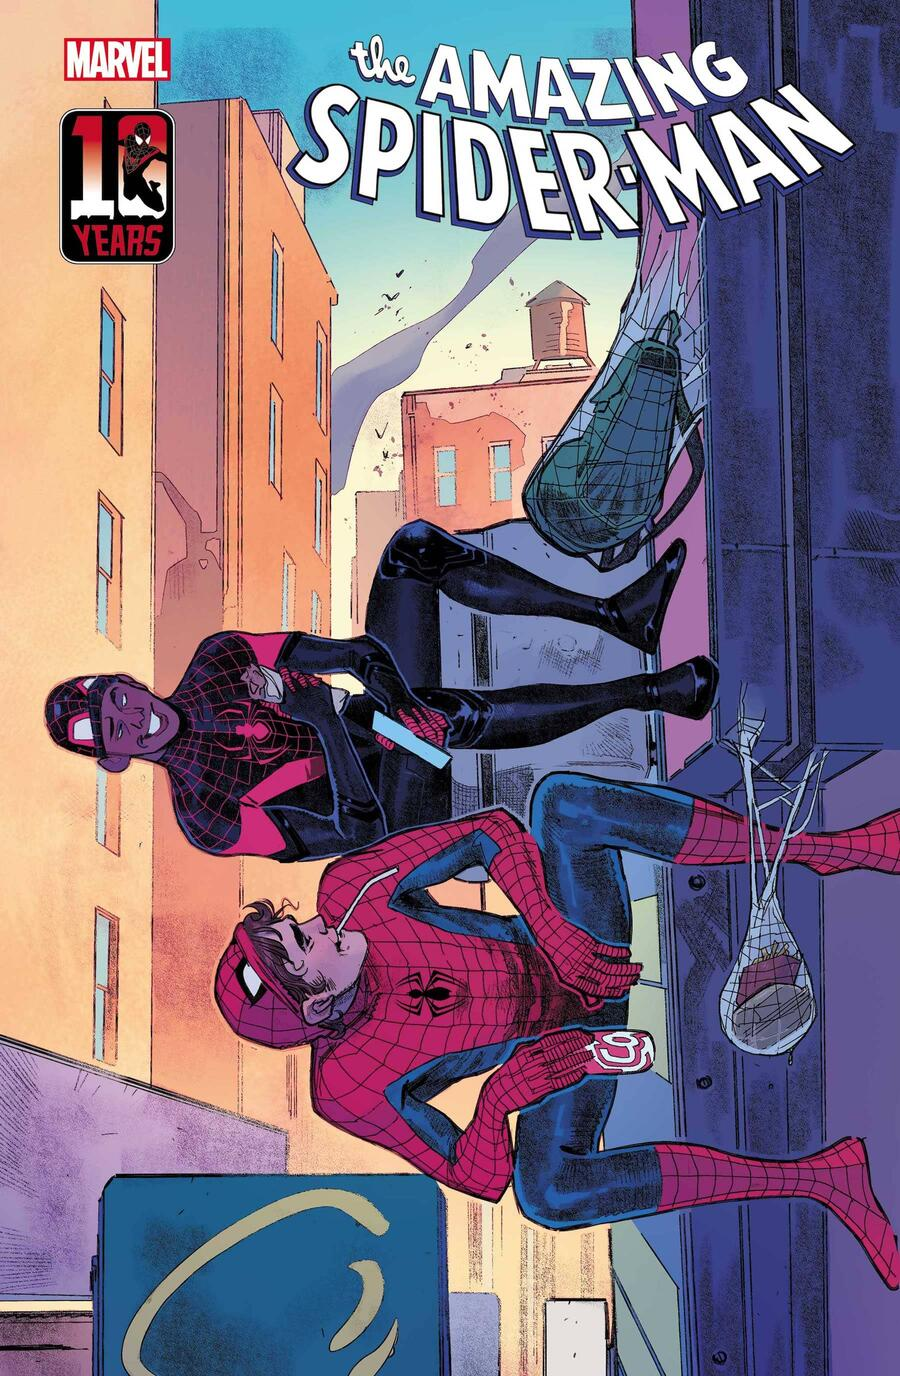 AMAZING SPIDER-MAN #74 MILES MORALES 10th ANNIVERSARY VARIANT COVER by SARA PICHELLI with colors by TAMRA BONVILLAIN